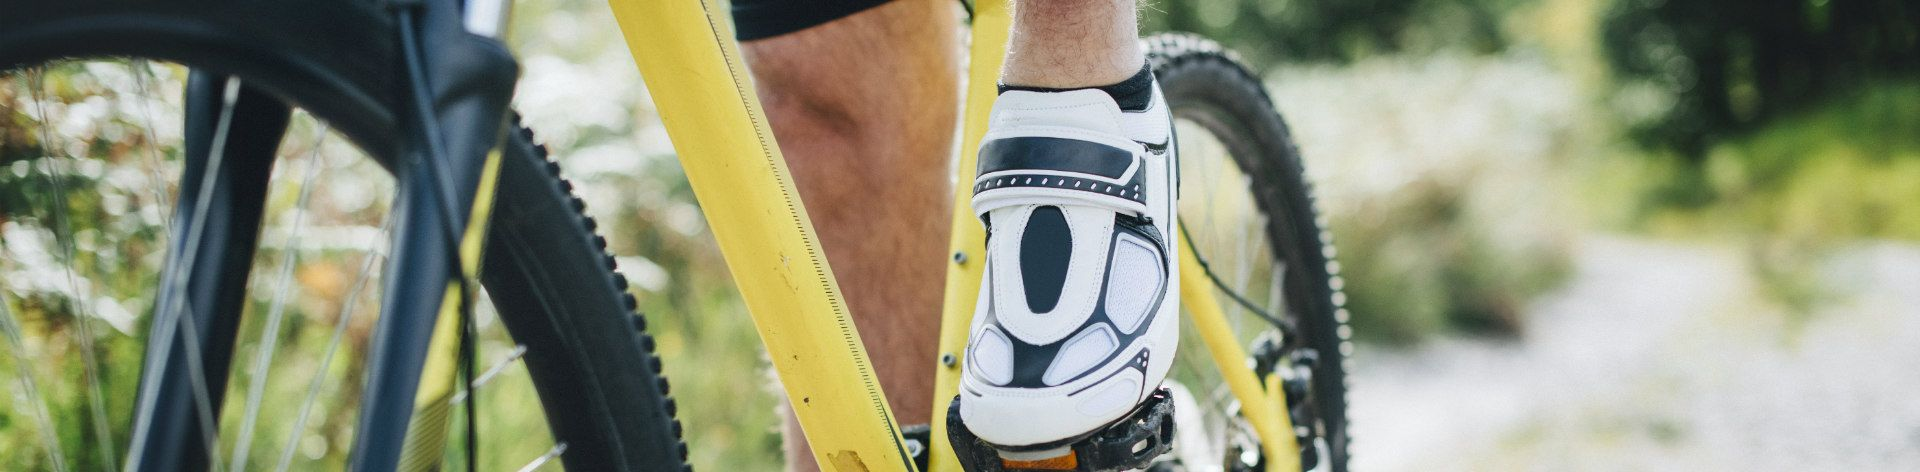 Van Eyck Sport cycling shoes outlet